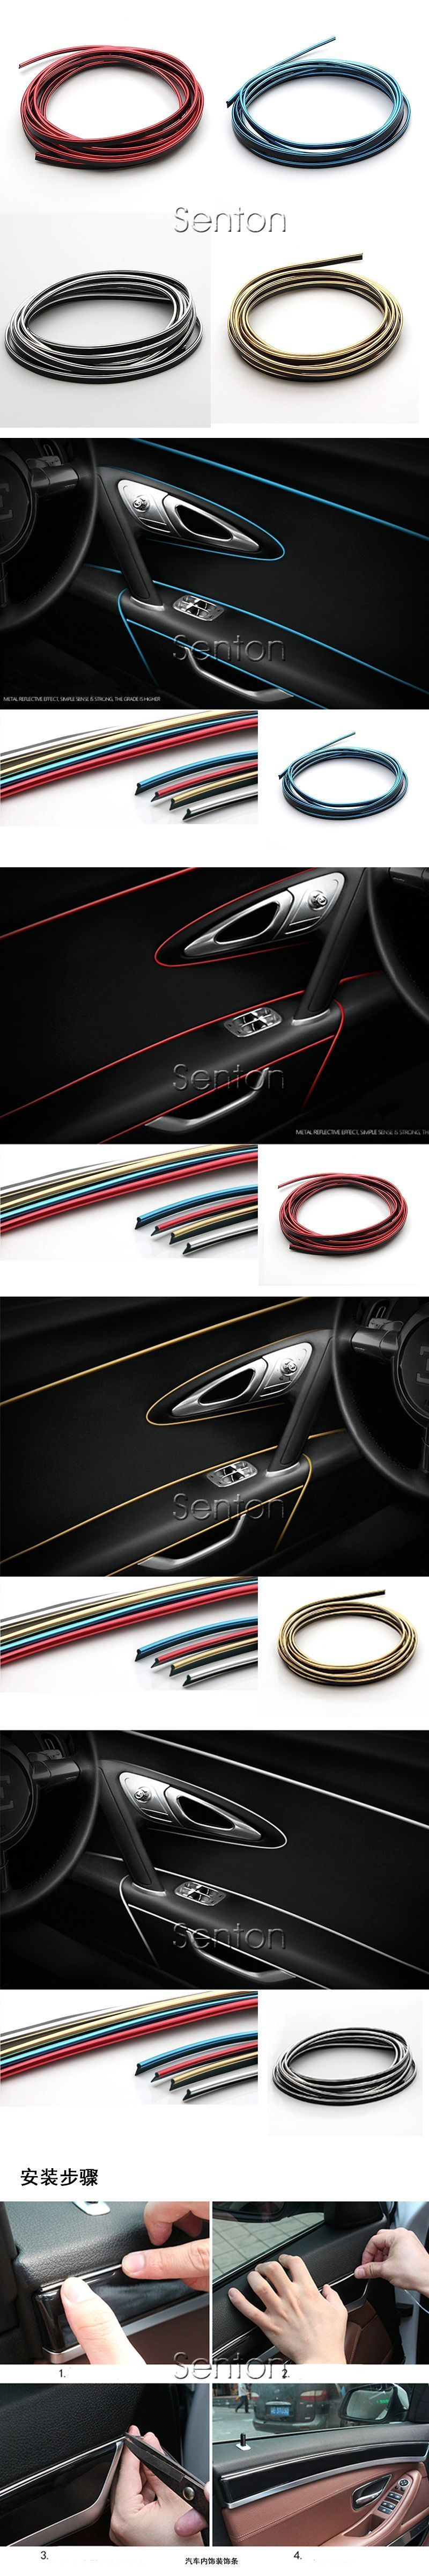 5m Car Styling Interior Decoration Stickers For Fiat Punto Stilo 500